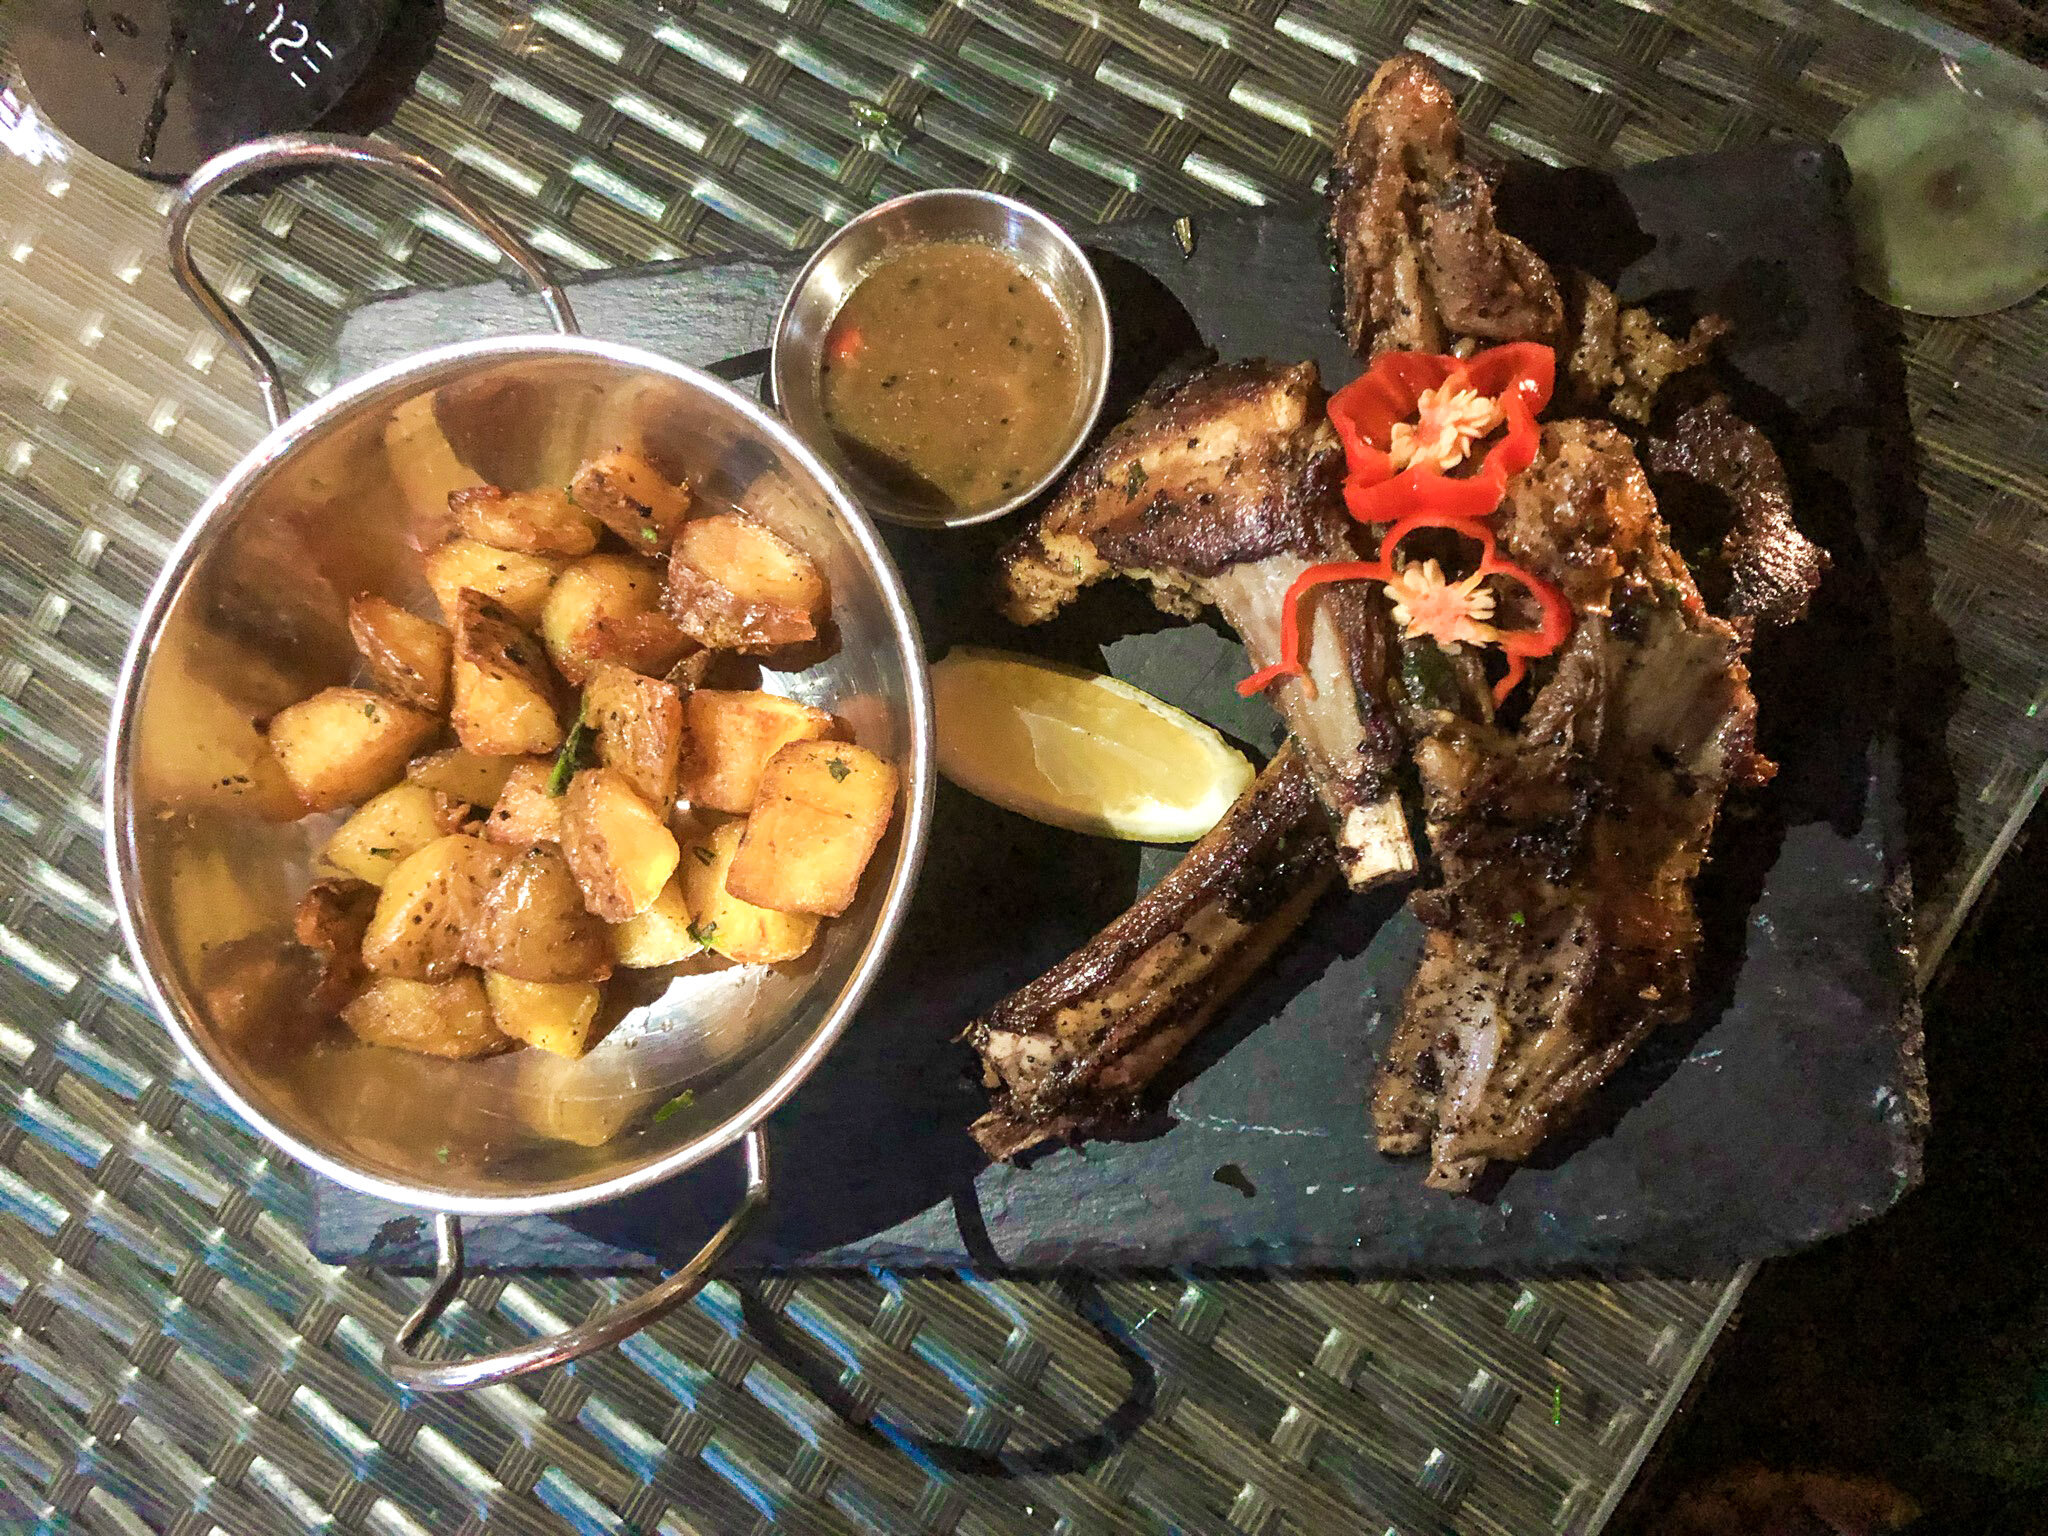 Grilled Lamb Chops, Rosemary Potatoes and a Side of Gravy